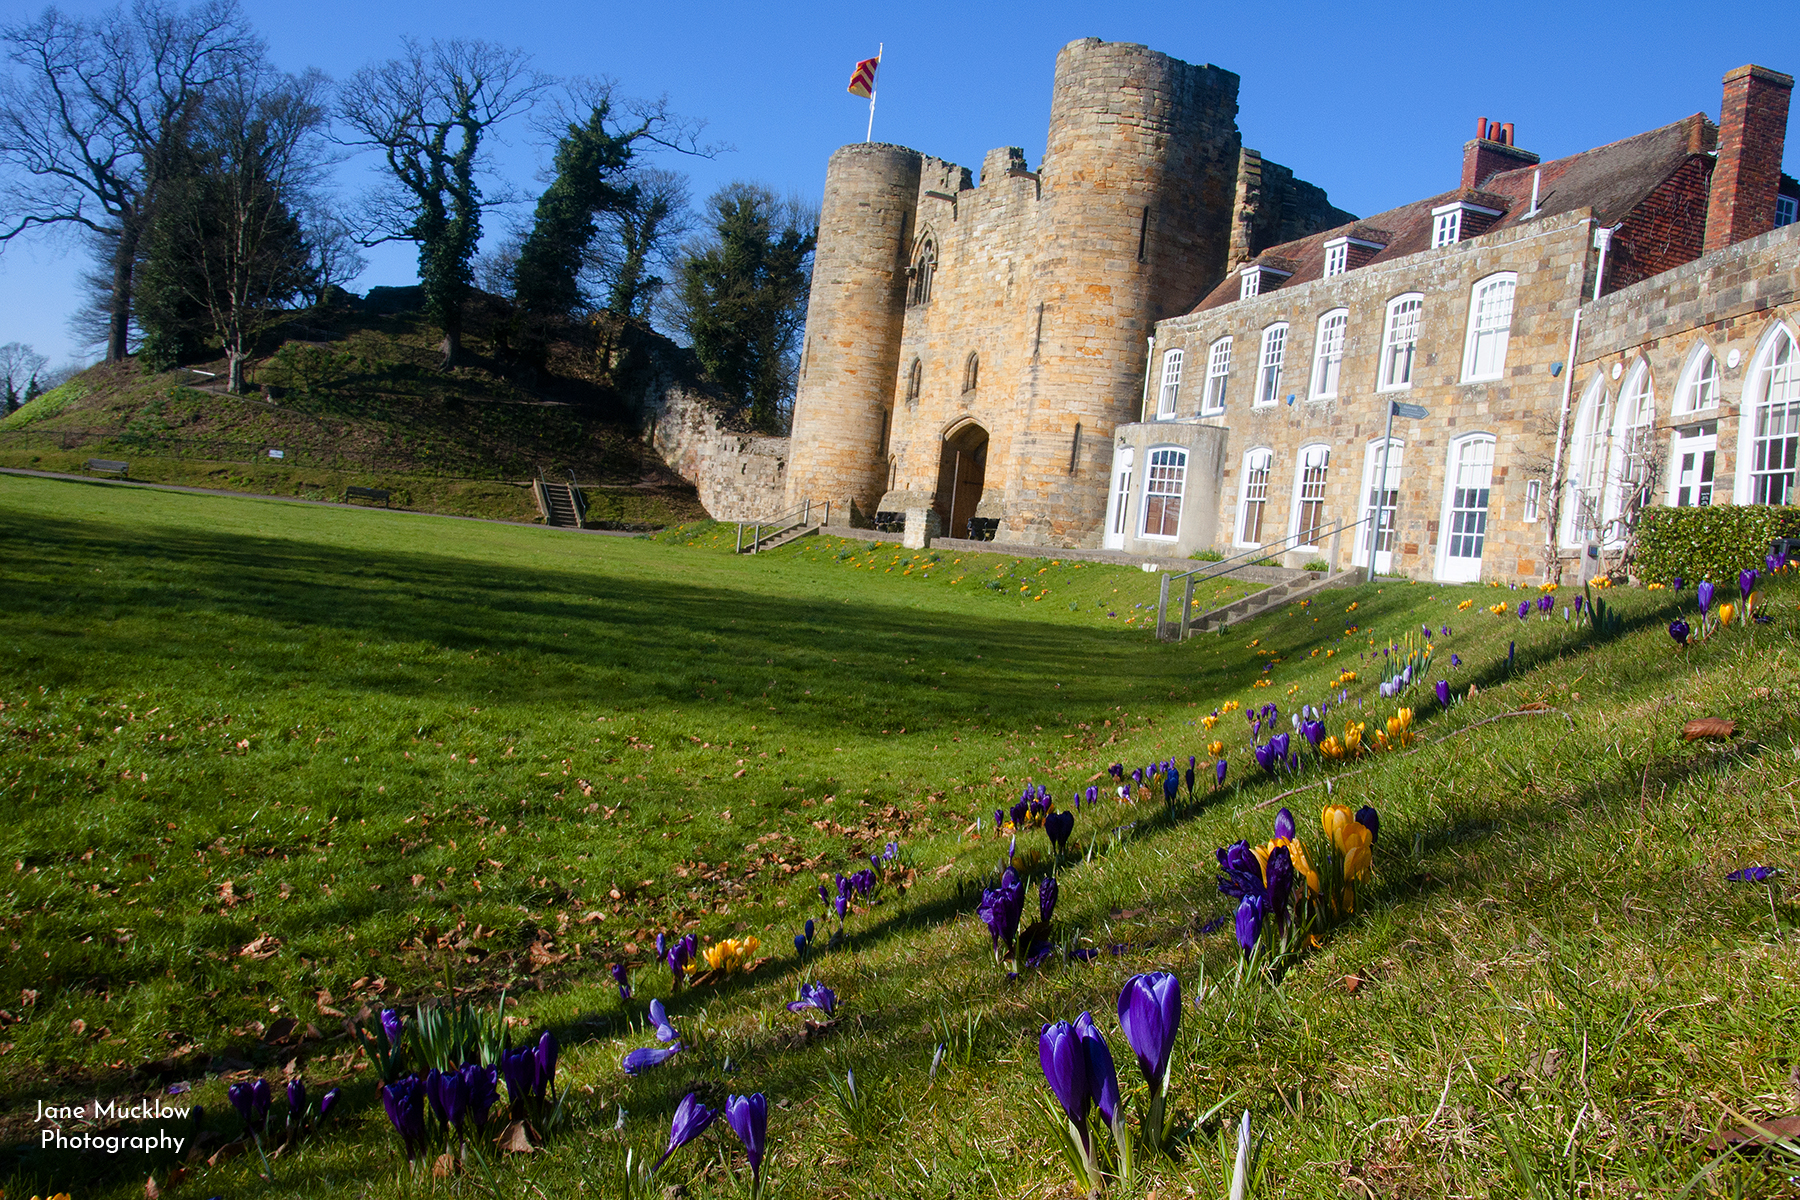 Photo by Jane Mucklow of Tonbridge Castle, crocuses on the lawn